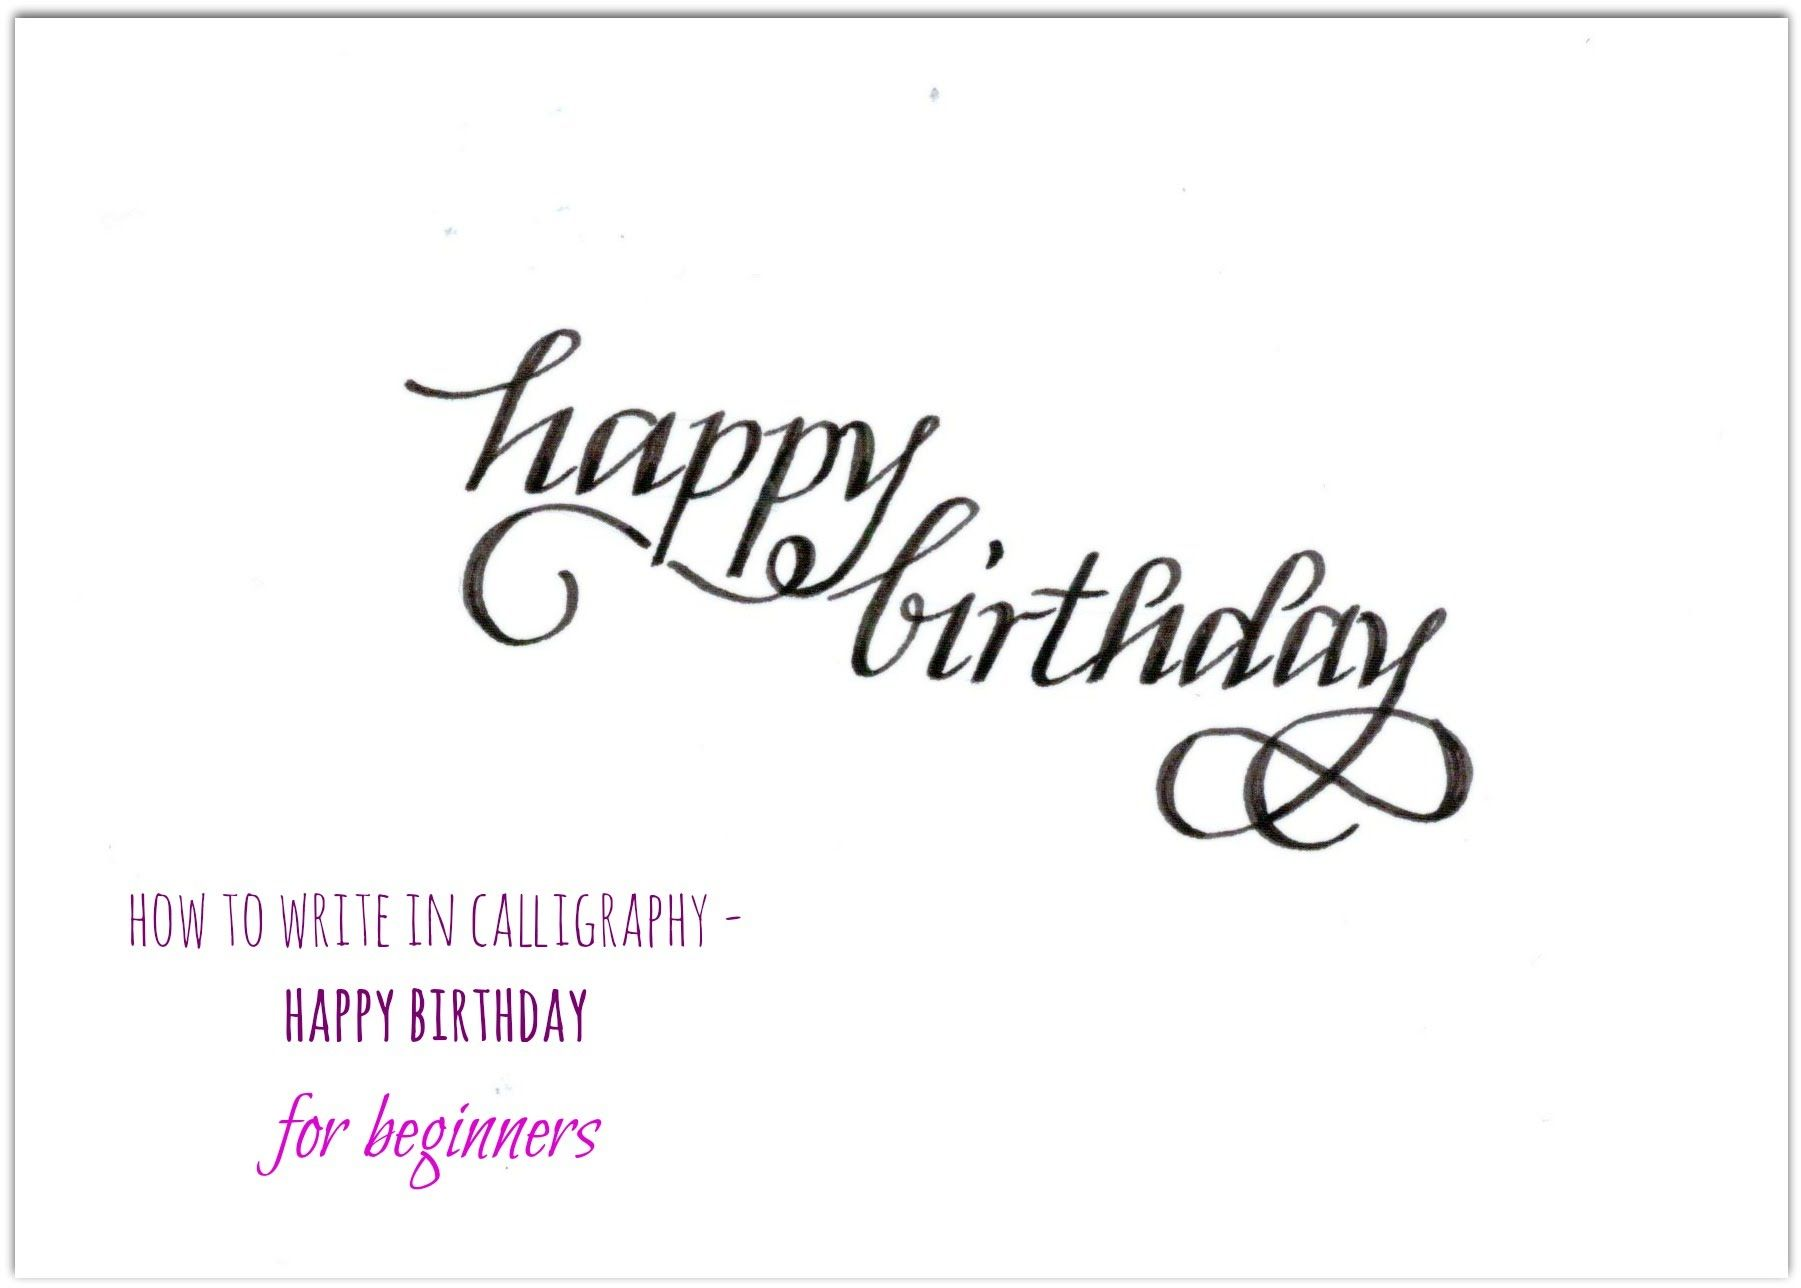 how to write in calligraphy - happy birthday for beginners  Happy